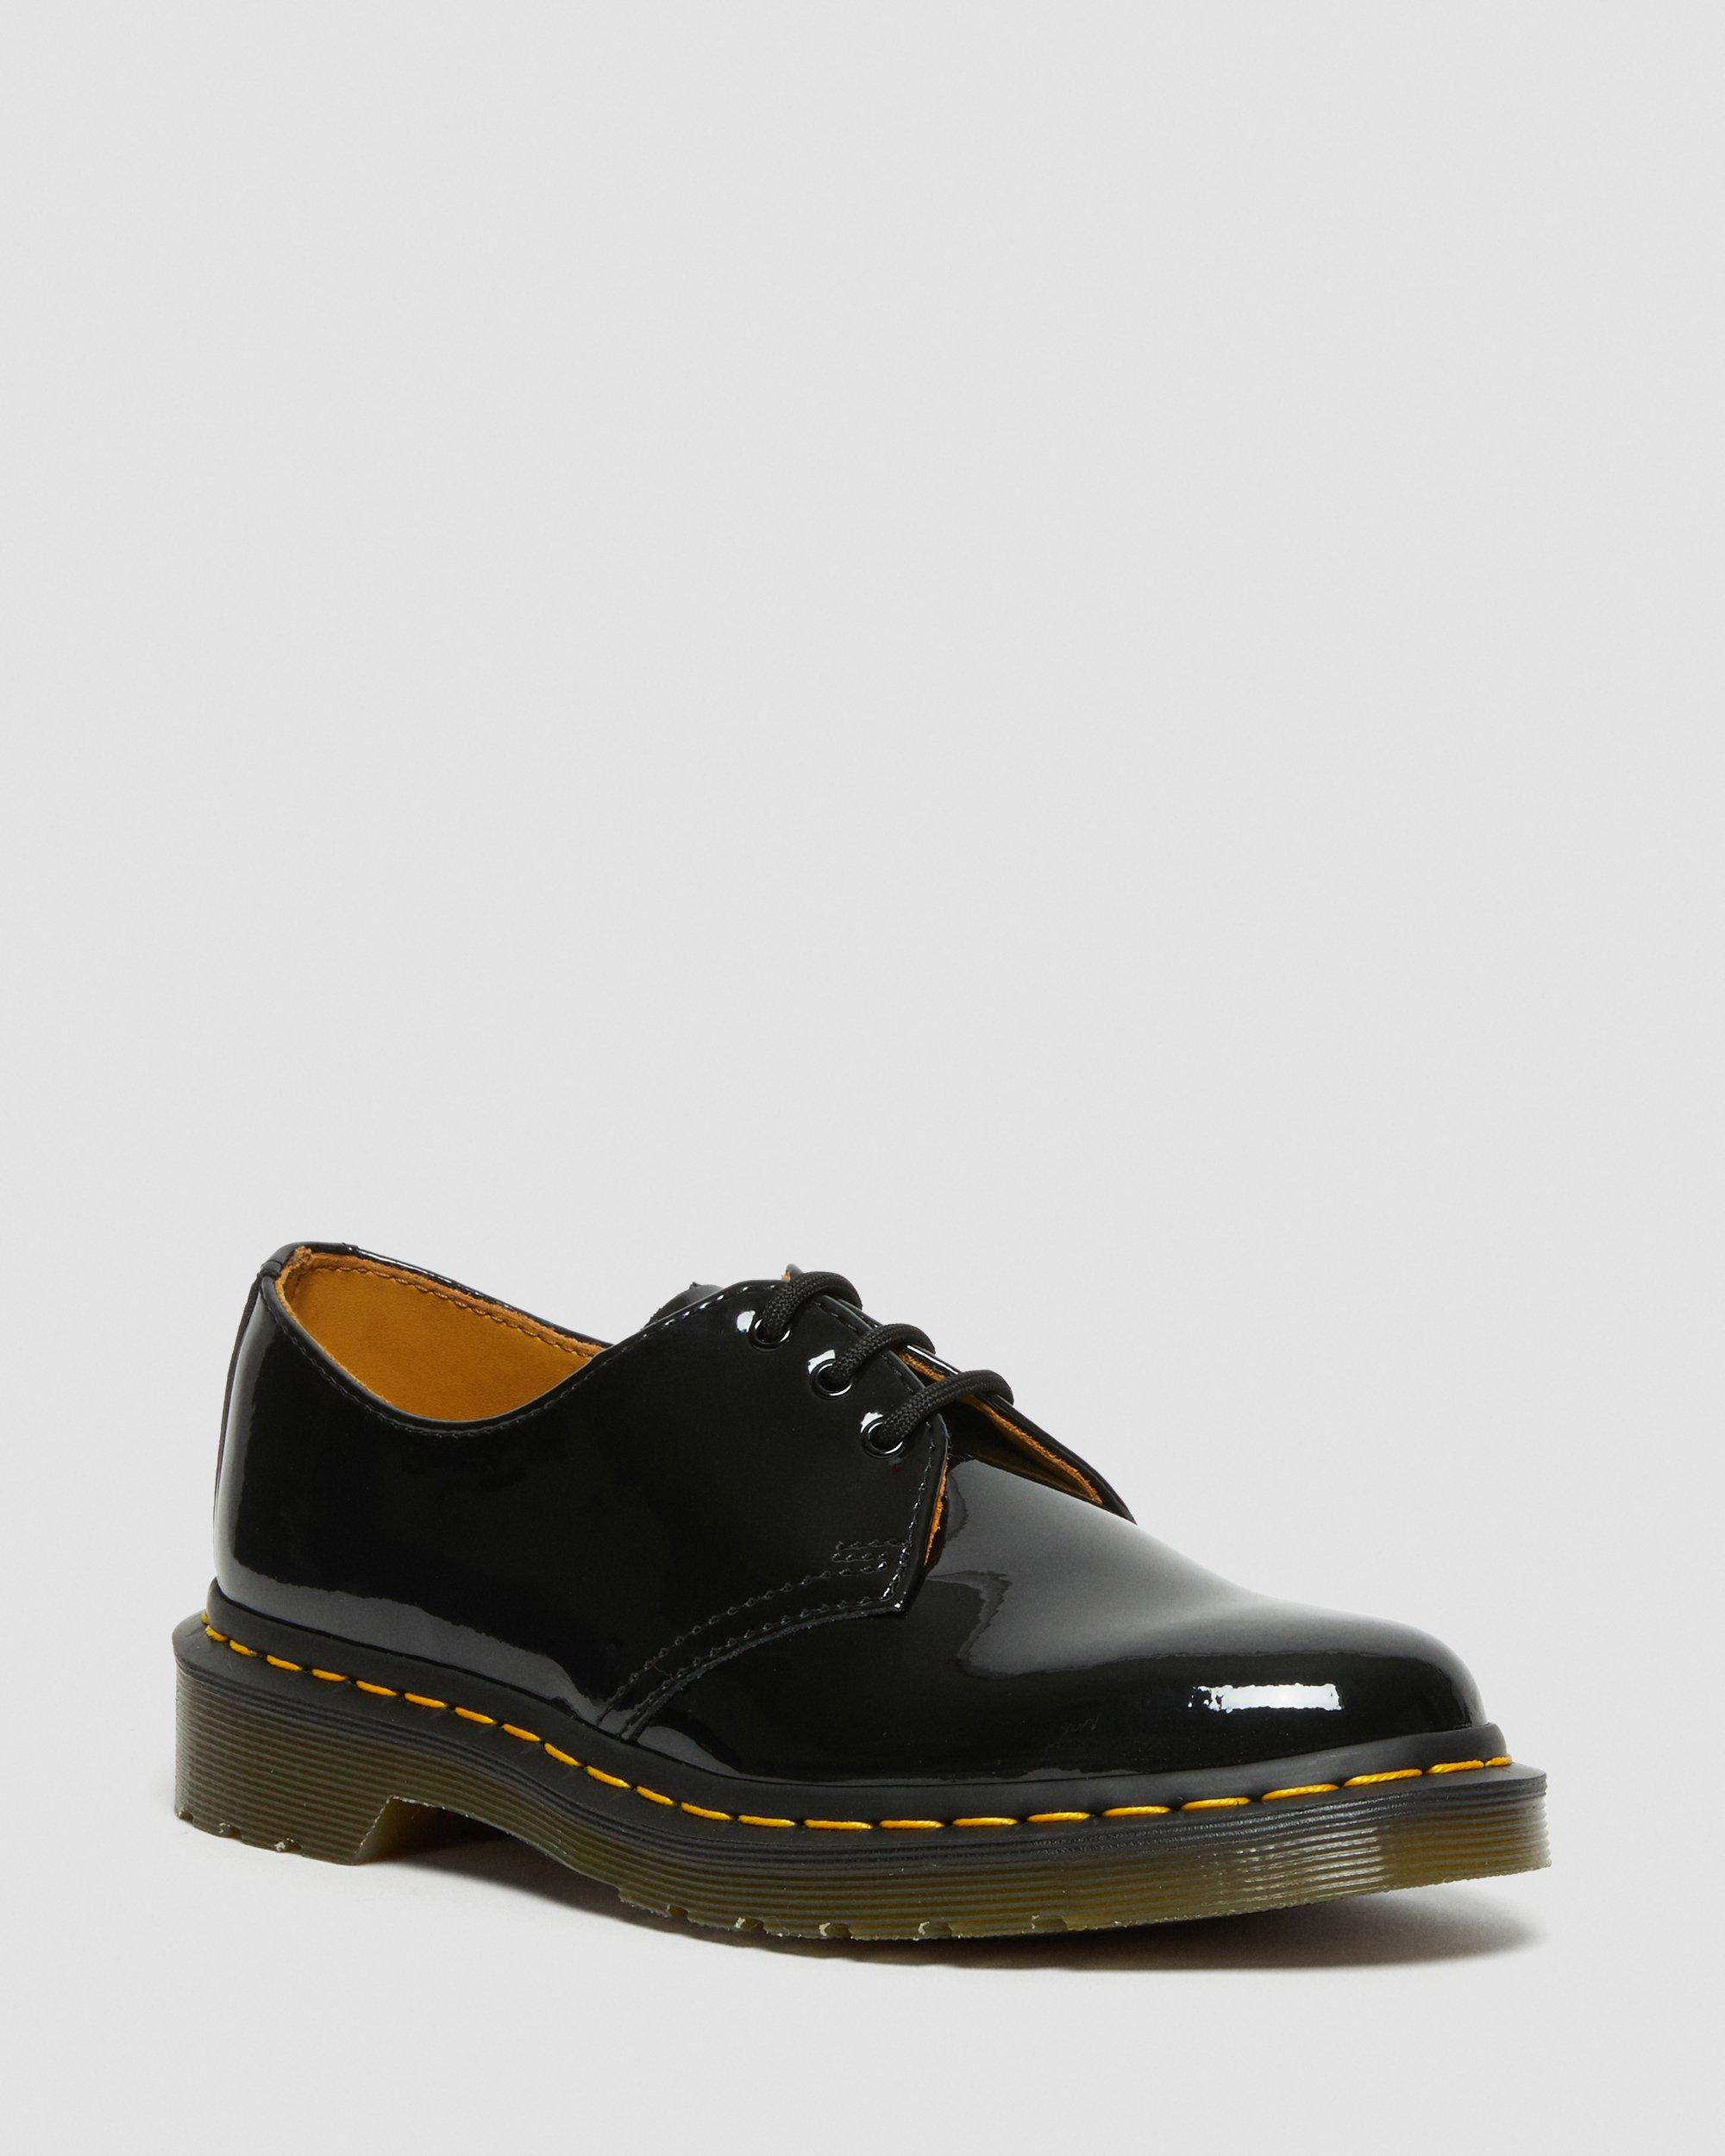 1461 PATENT WOMEN'S LEATHER OXFORD SHOES | Women's Boots